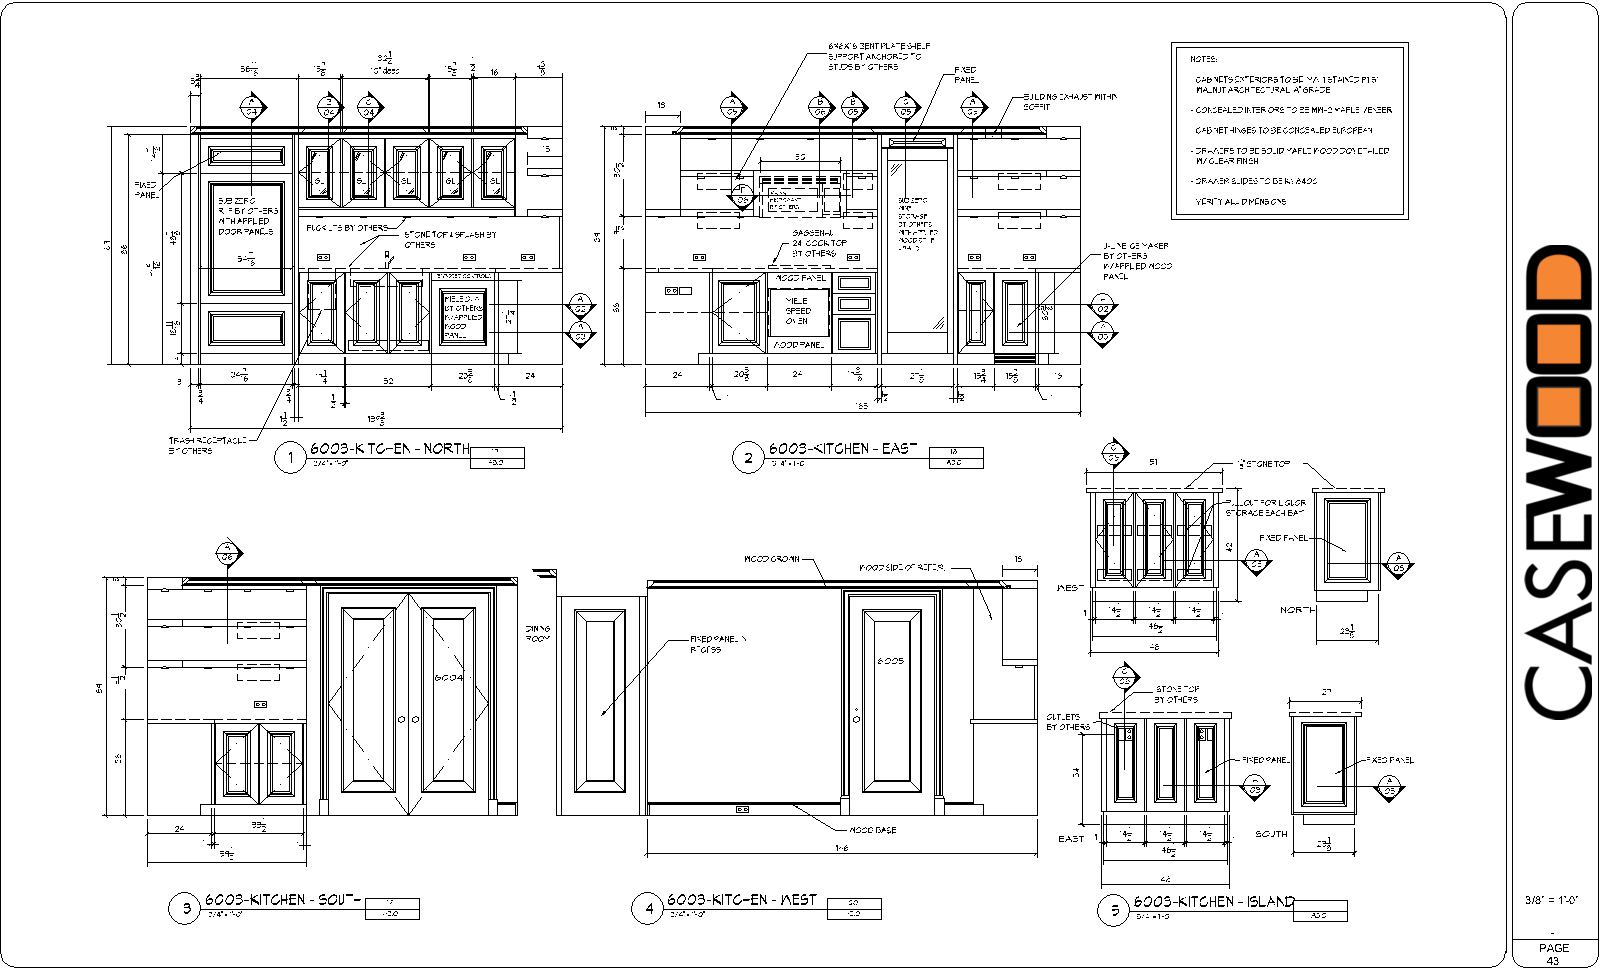 Pin on Elevations Drafting House Plans Orlando on drafting doors, drafting plan kitchen, drafting a letter, drafting office, home drawing plans, drafting engineers, drafting plumbing plan,